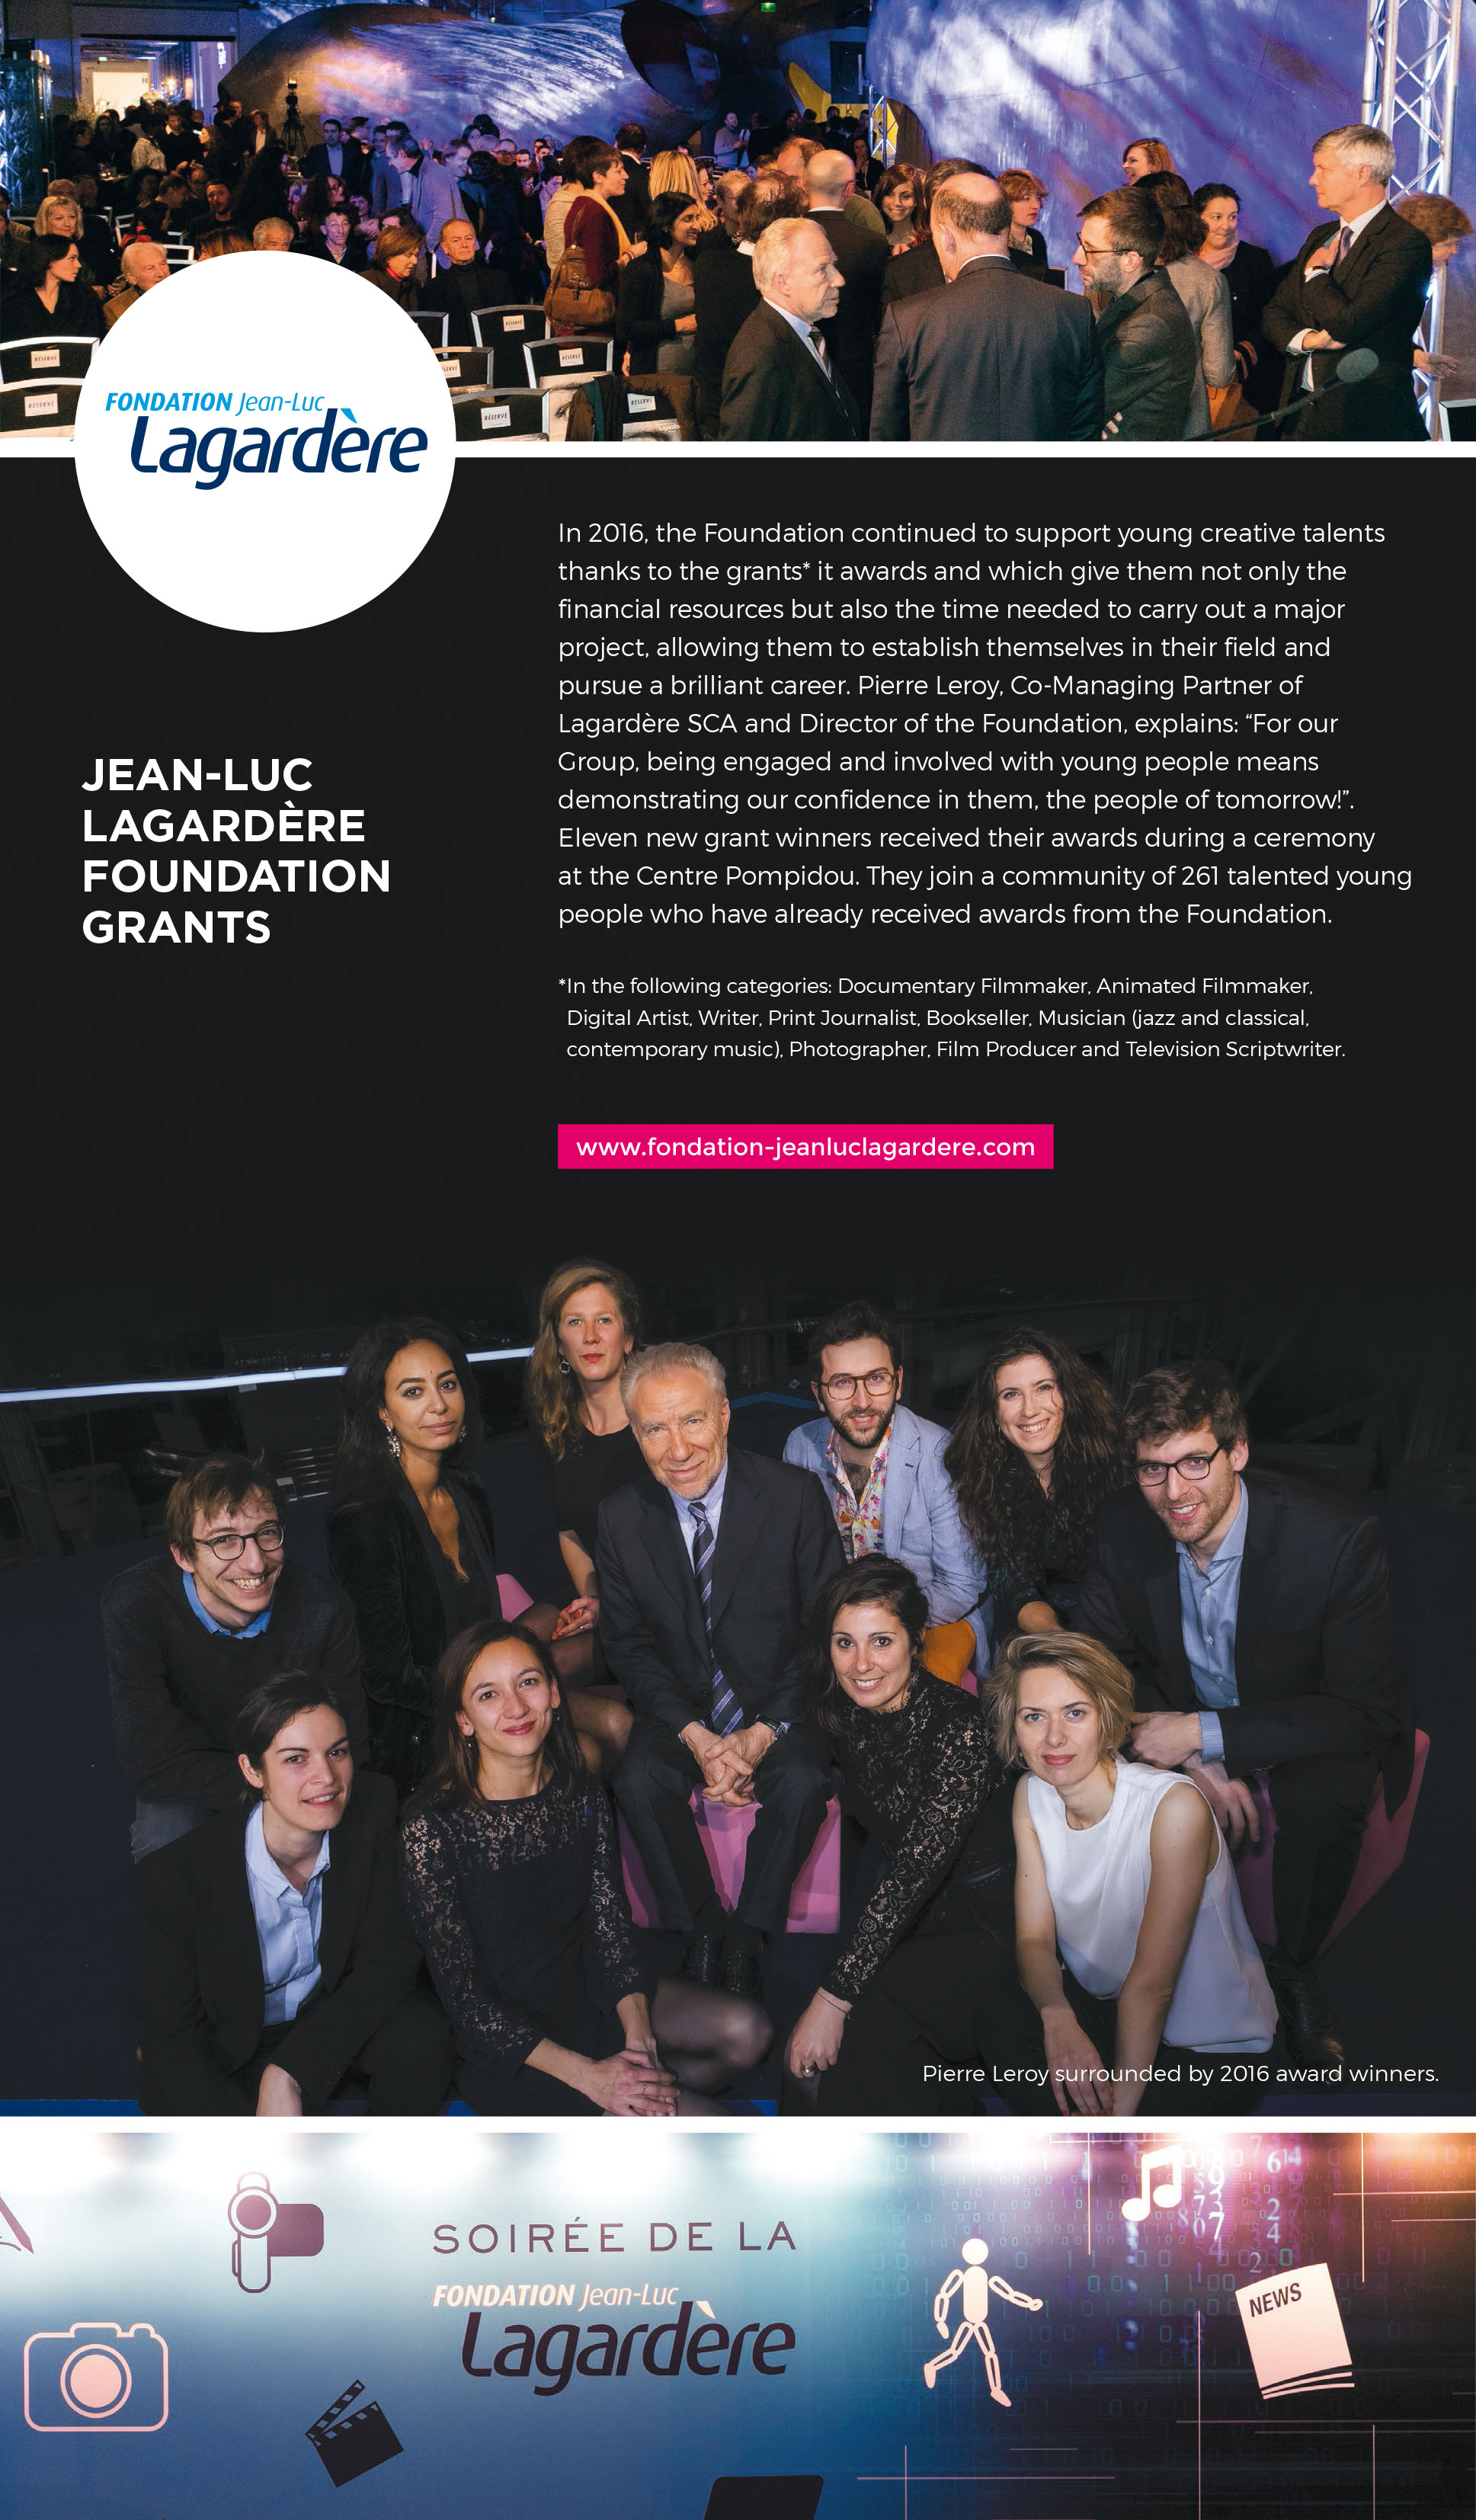 Jean-Luc Lagardère Foundation grants: Pierre Leroy surrounded by 2016 award winners